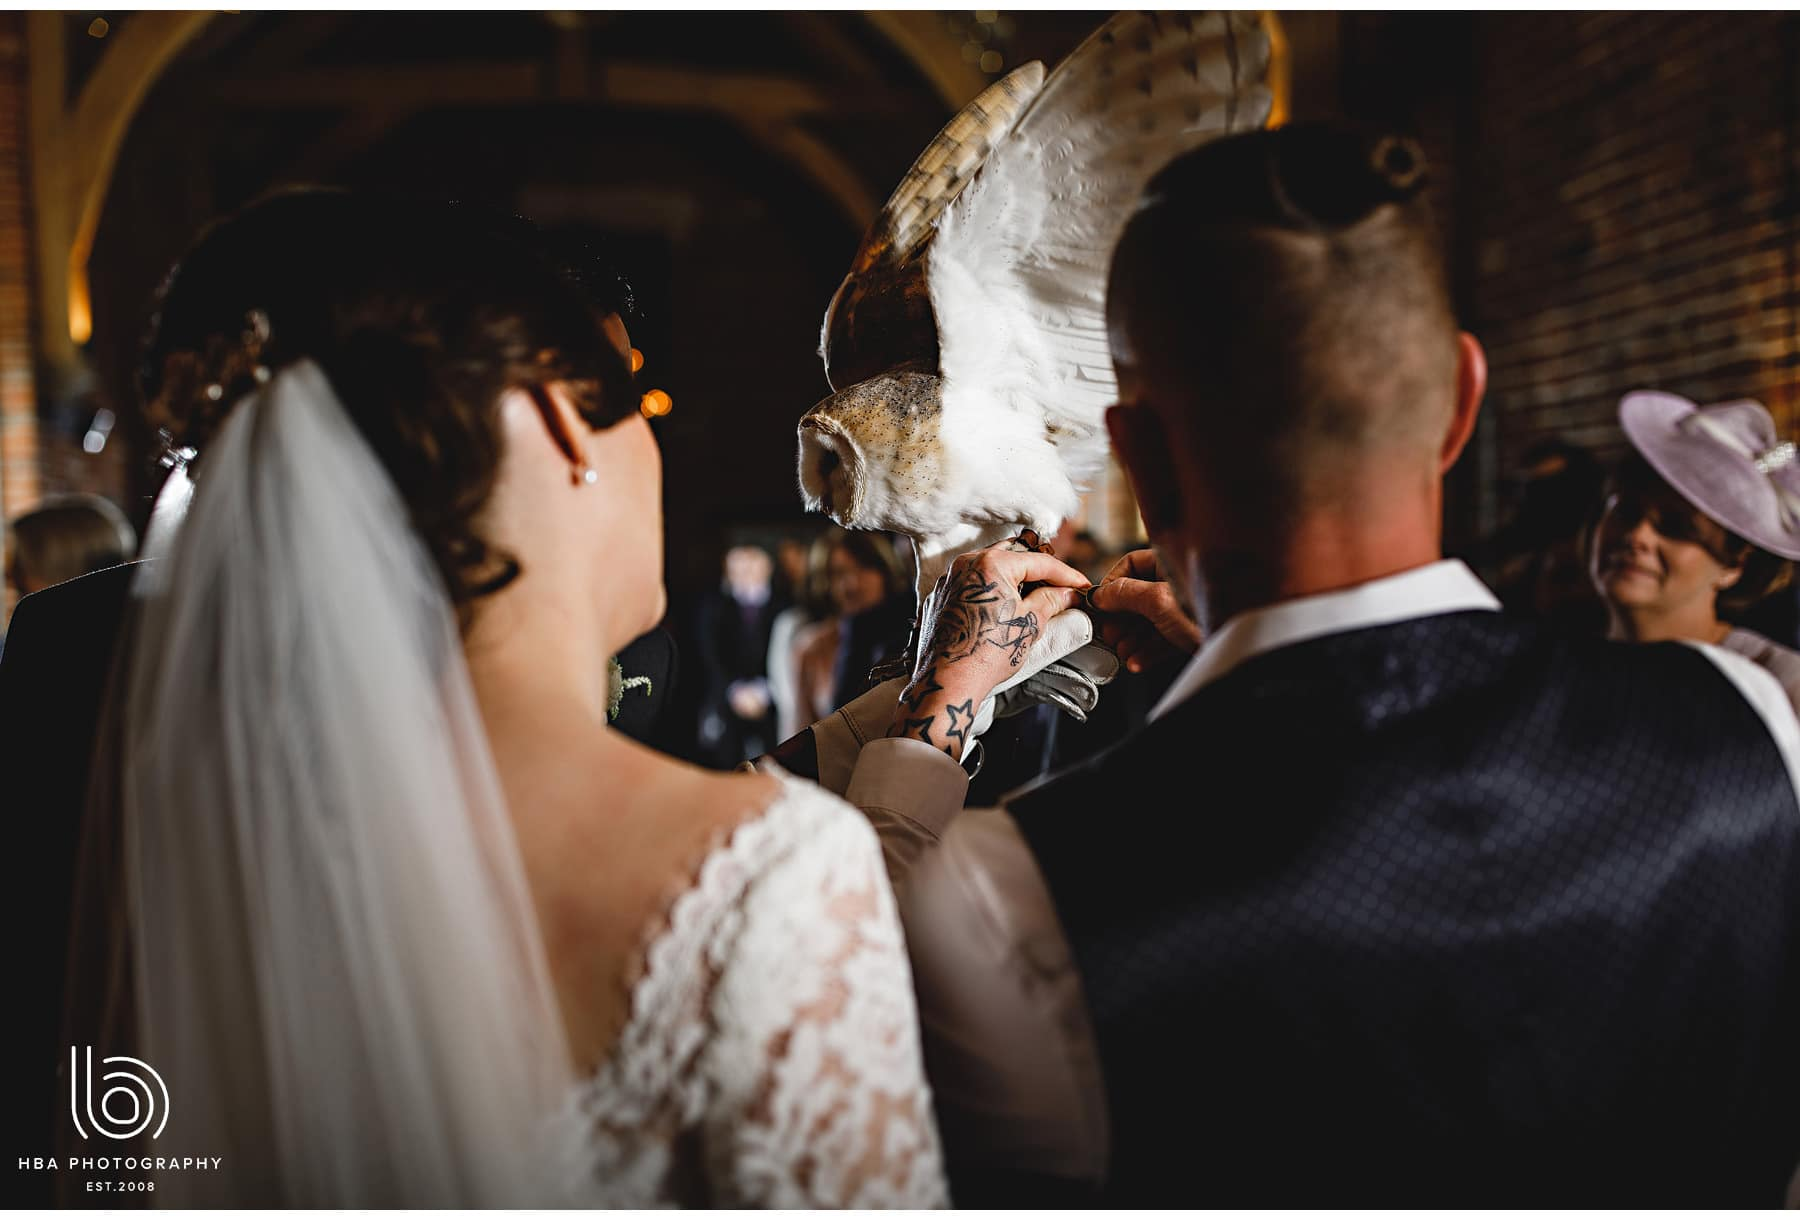 the owl bringing the rings down the aisle